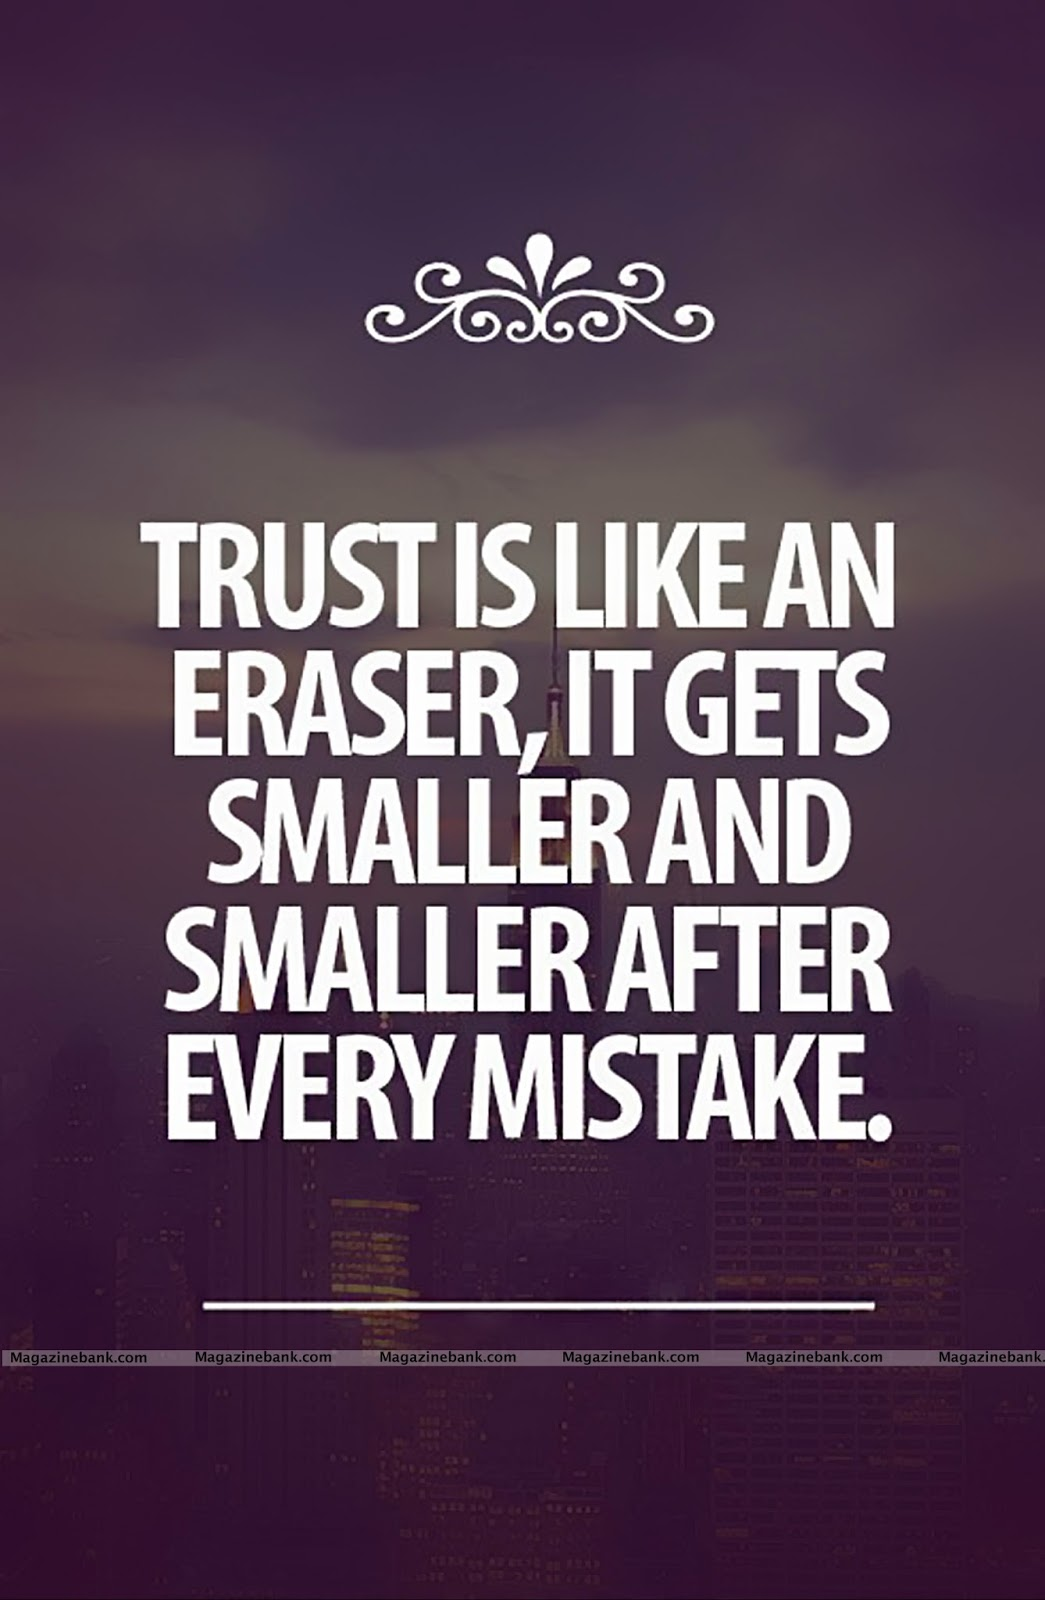 Quotes About Friendship Tagalog Quotes About Trust Issues And Lies In A Relationshiop And Love